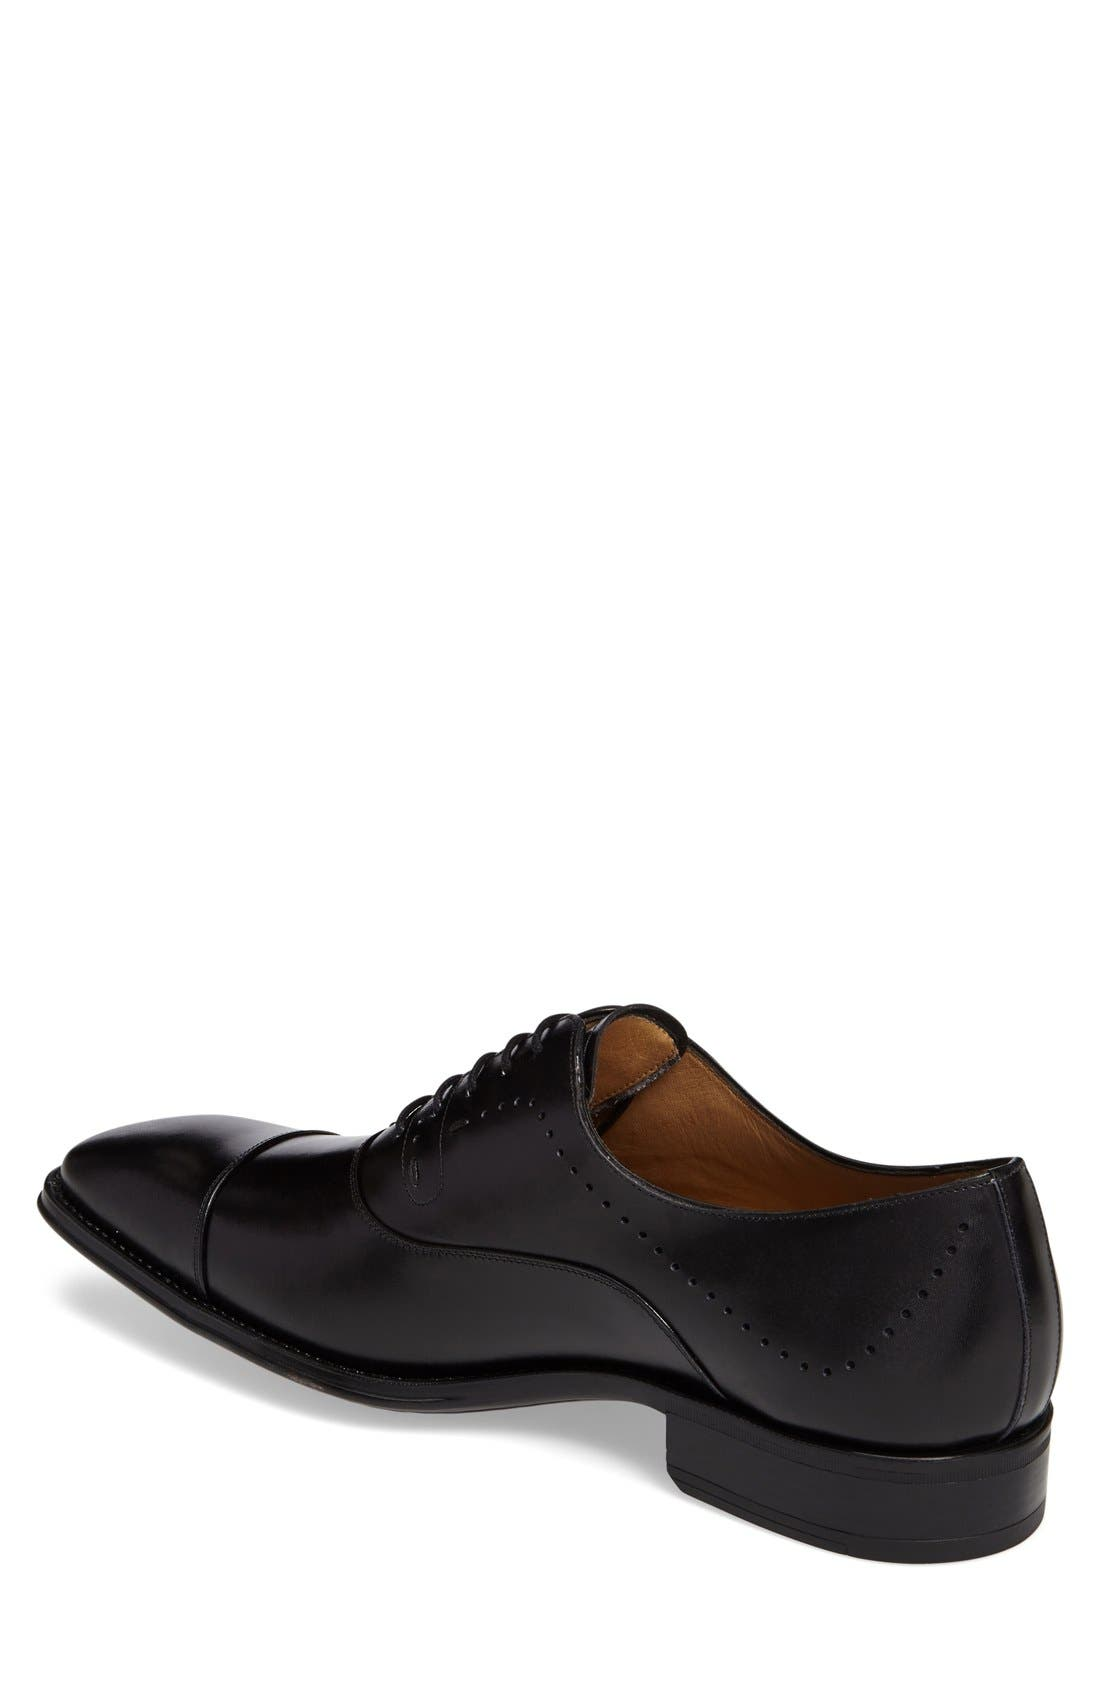 'Fermo' Cap Toe Perforated Oxford,                             Alternate thumbnail 2, color,                             001